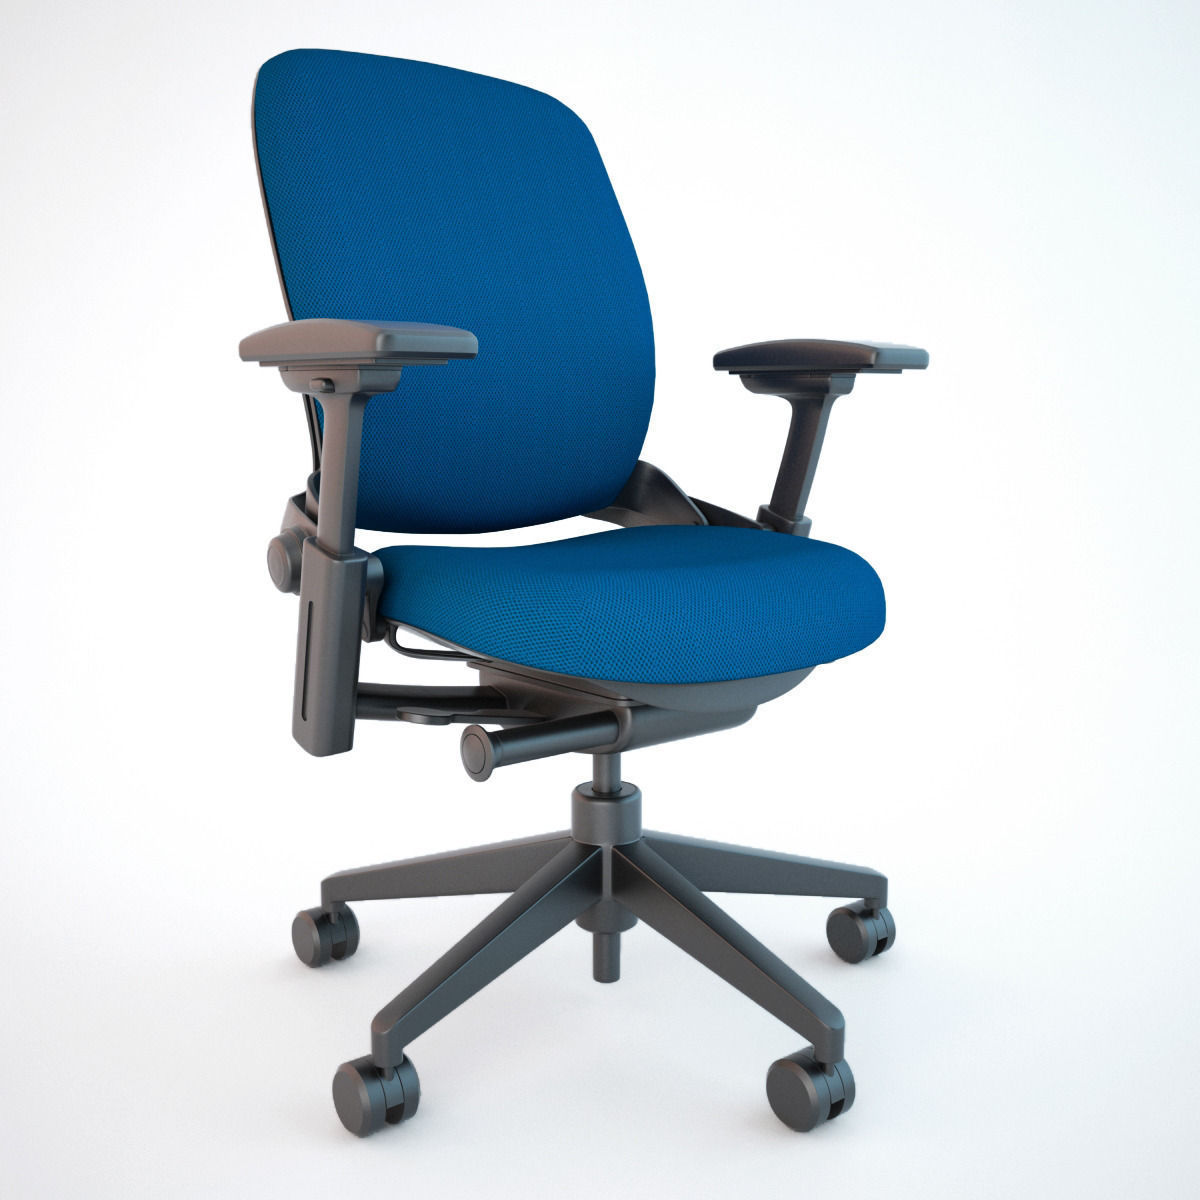 Leap Chair By Steelcase steelcase leap office chair 3d model | cgtrader